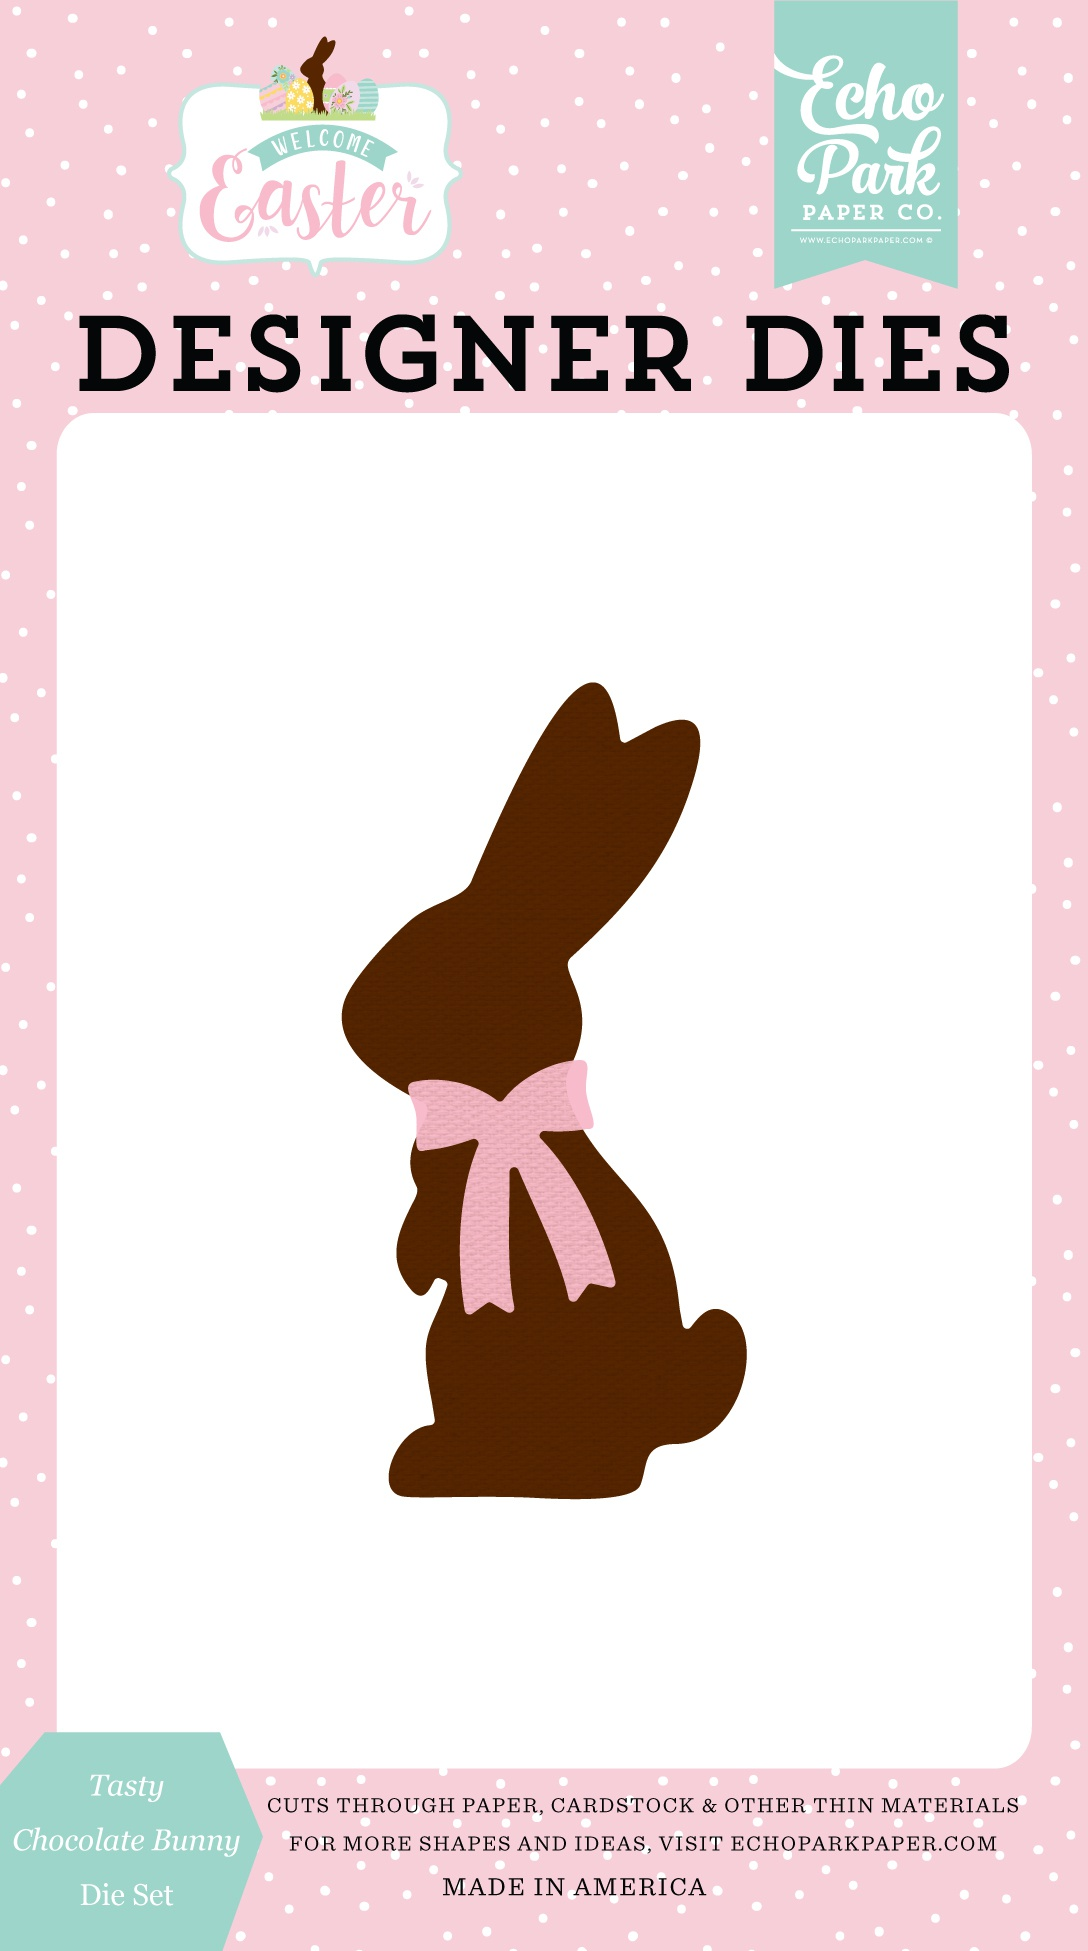 Echo Park Dies-Tasty Chocolate Bunny, Welcome Easter